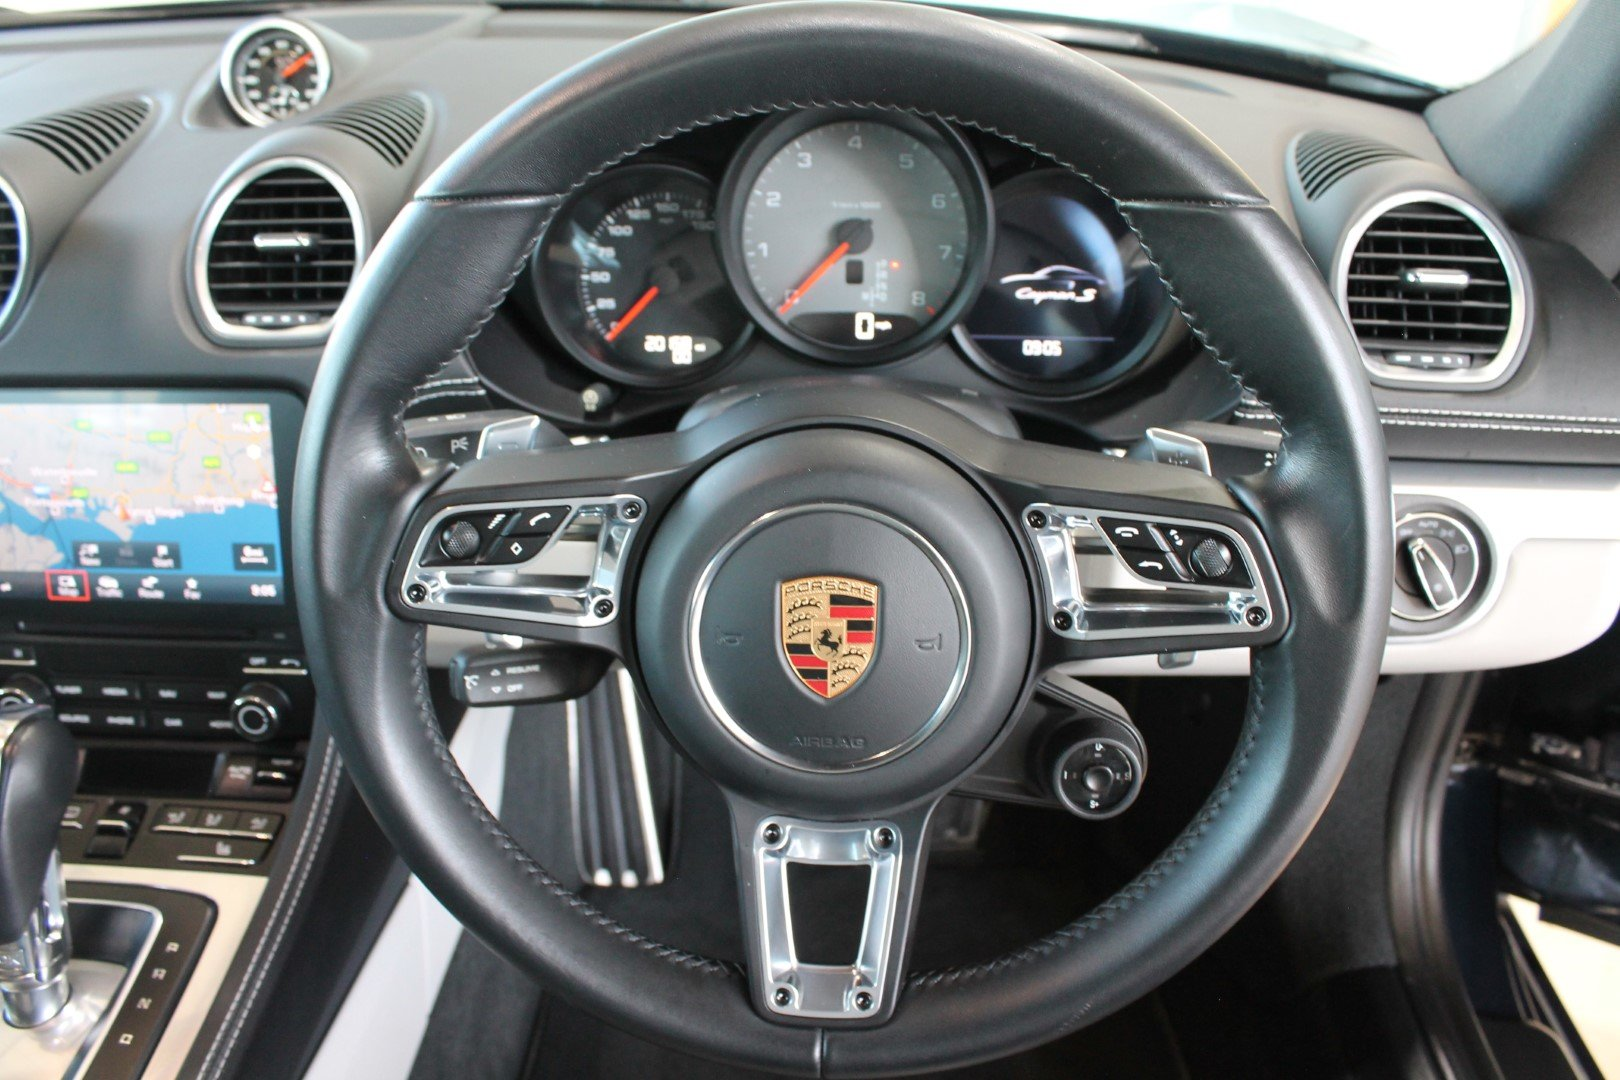 2016 Porsche Cayman (718) 2.5 S PDK - NOW SOLD - MORE REQUIRED For Sale (picture 11 of 12)